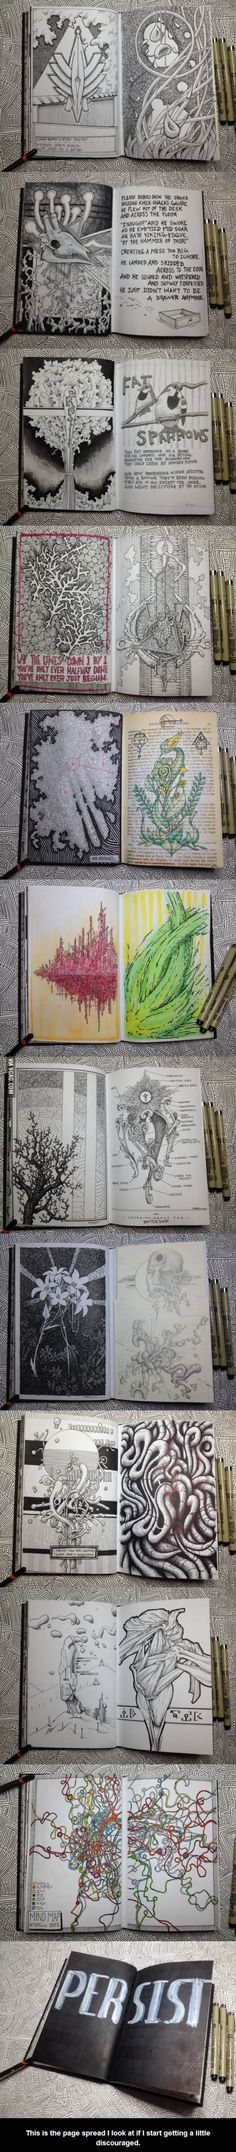 Drawing book *^* my dream